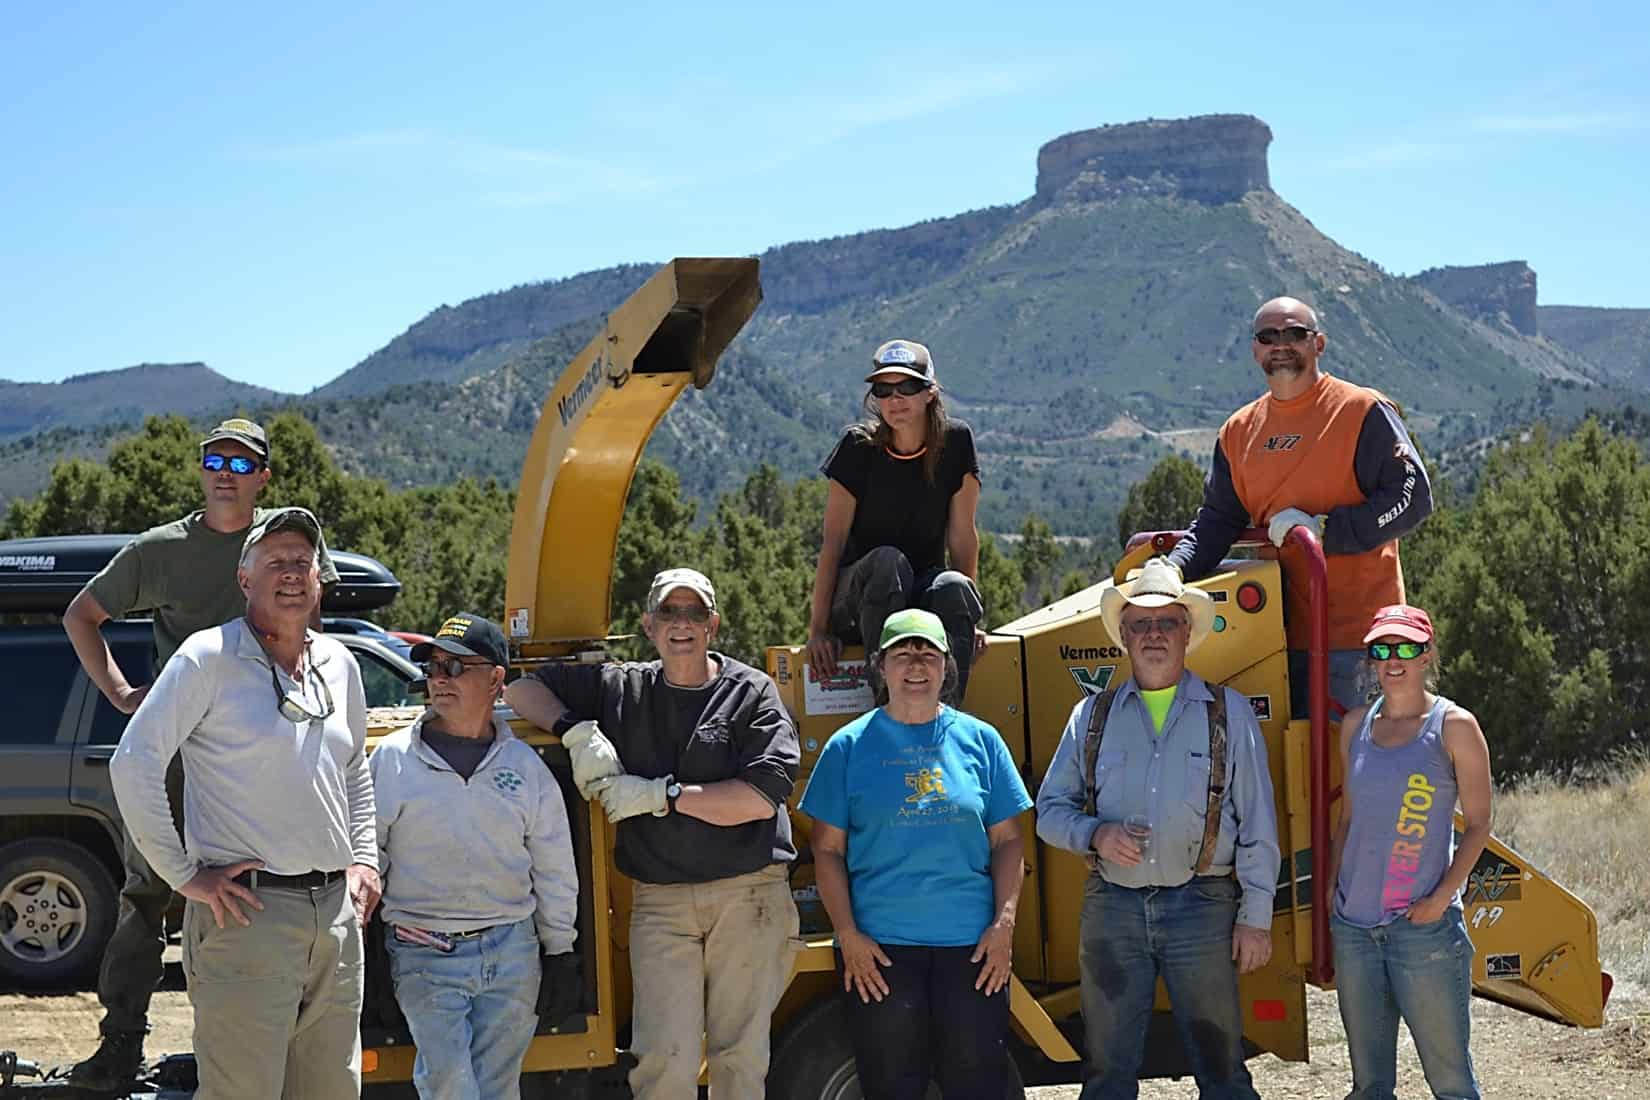 Group of volunteer pause for a photo in front of a wood chipper